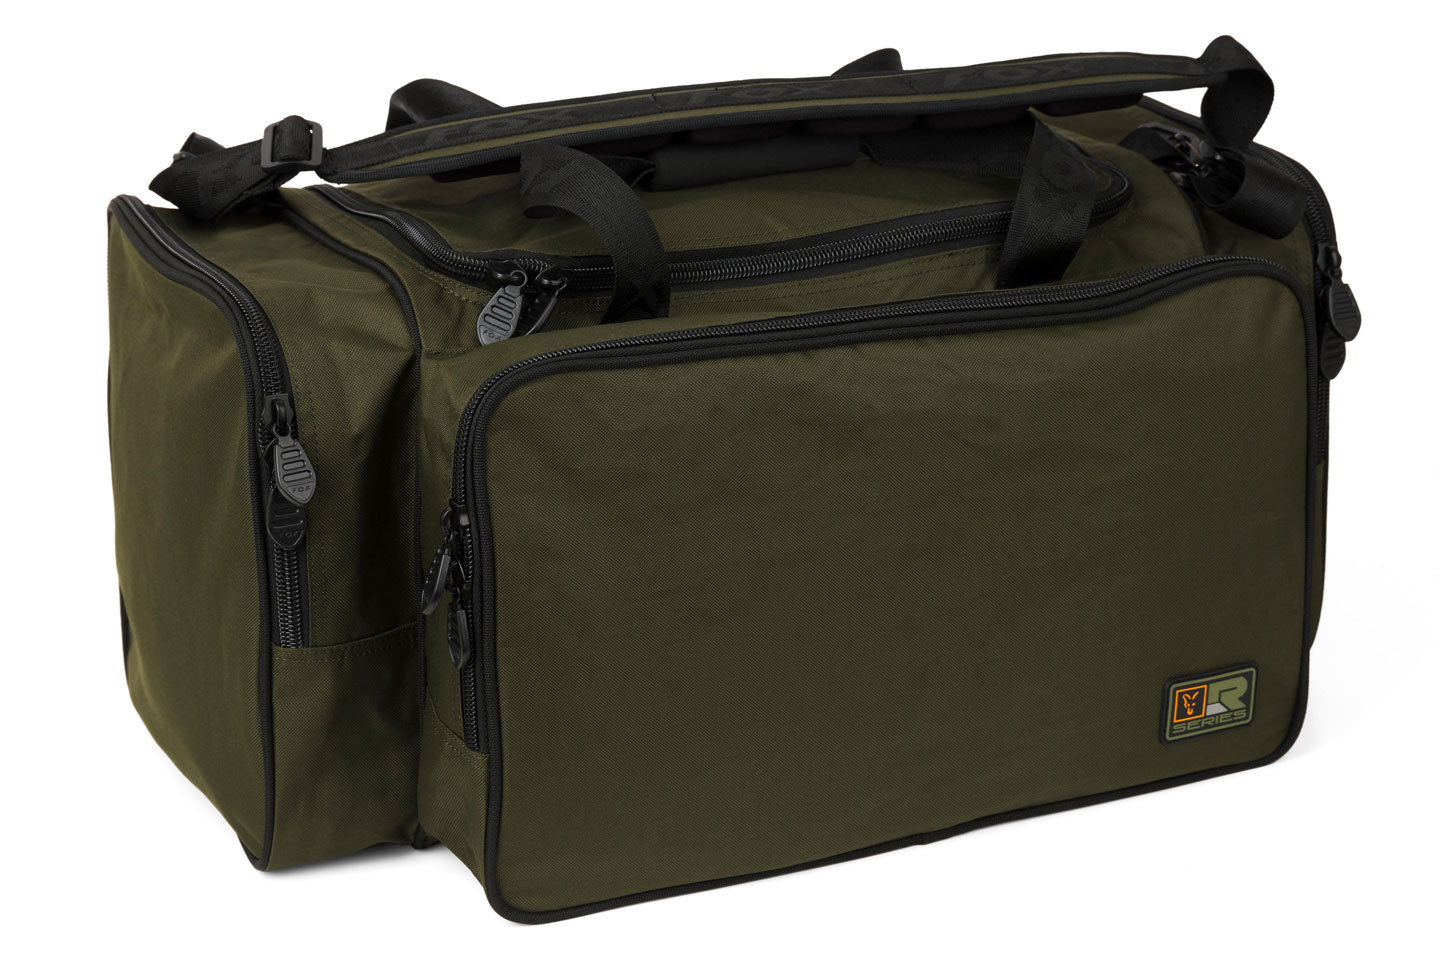 r-series-large-carryall_mainjpg